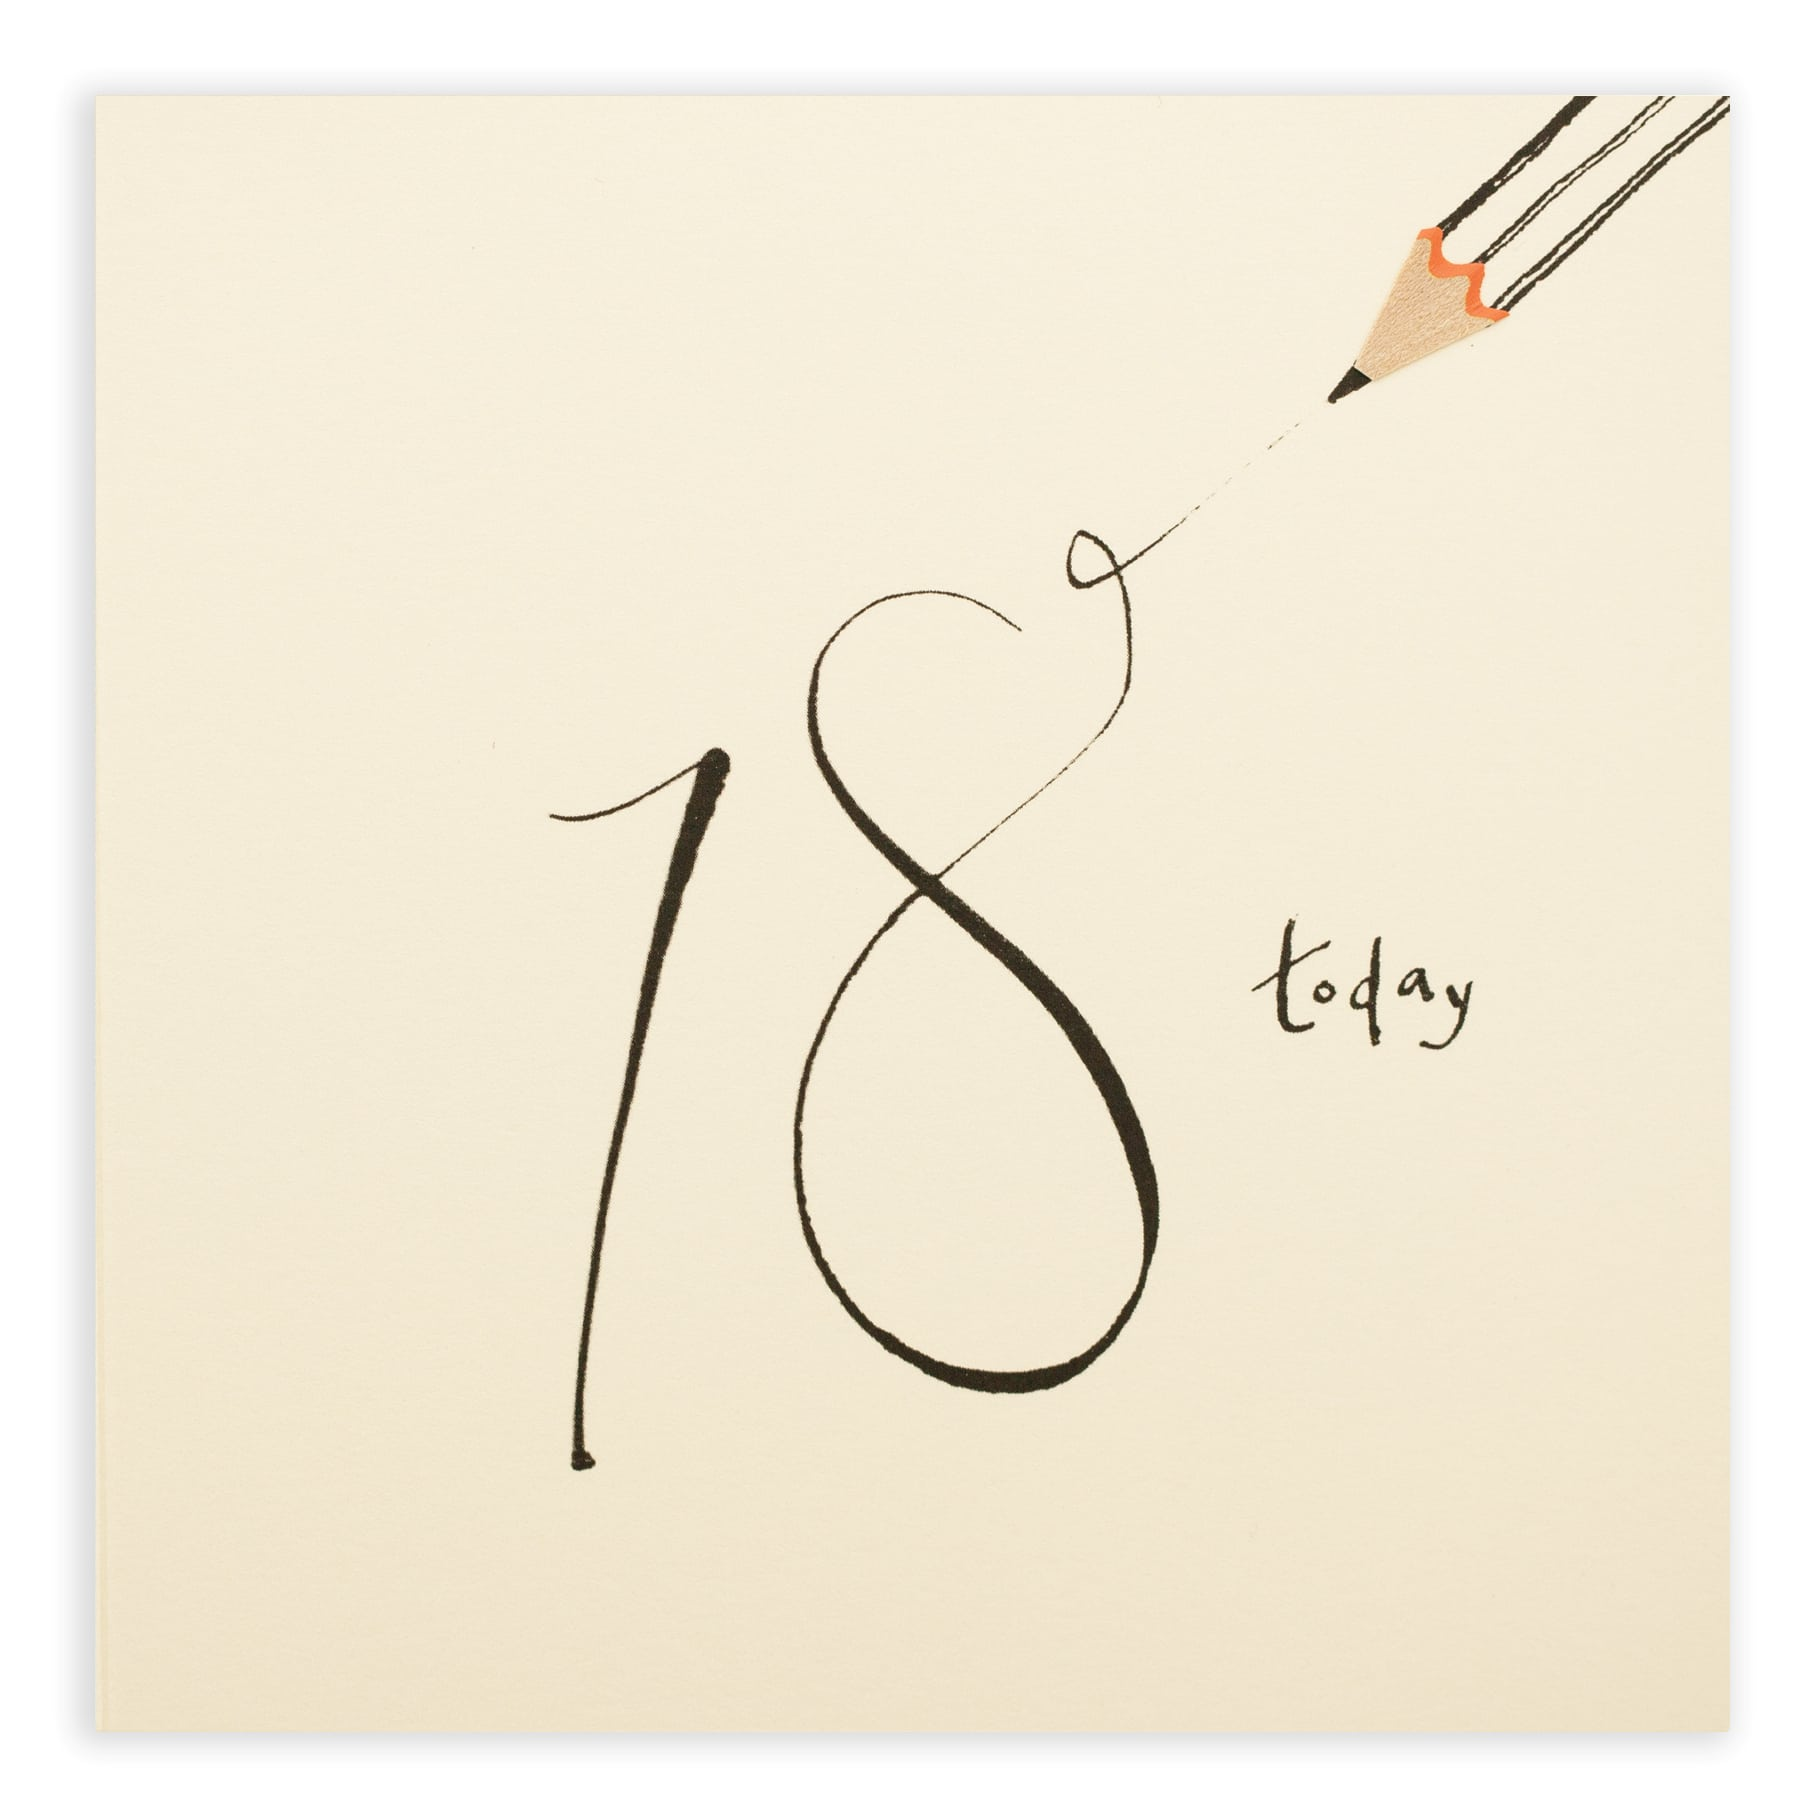 18 today by ruth jackson